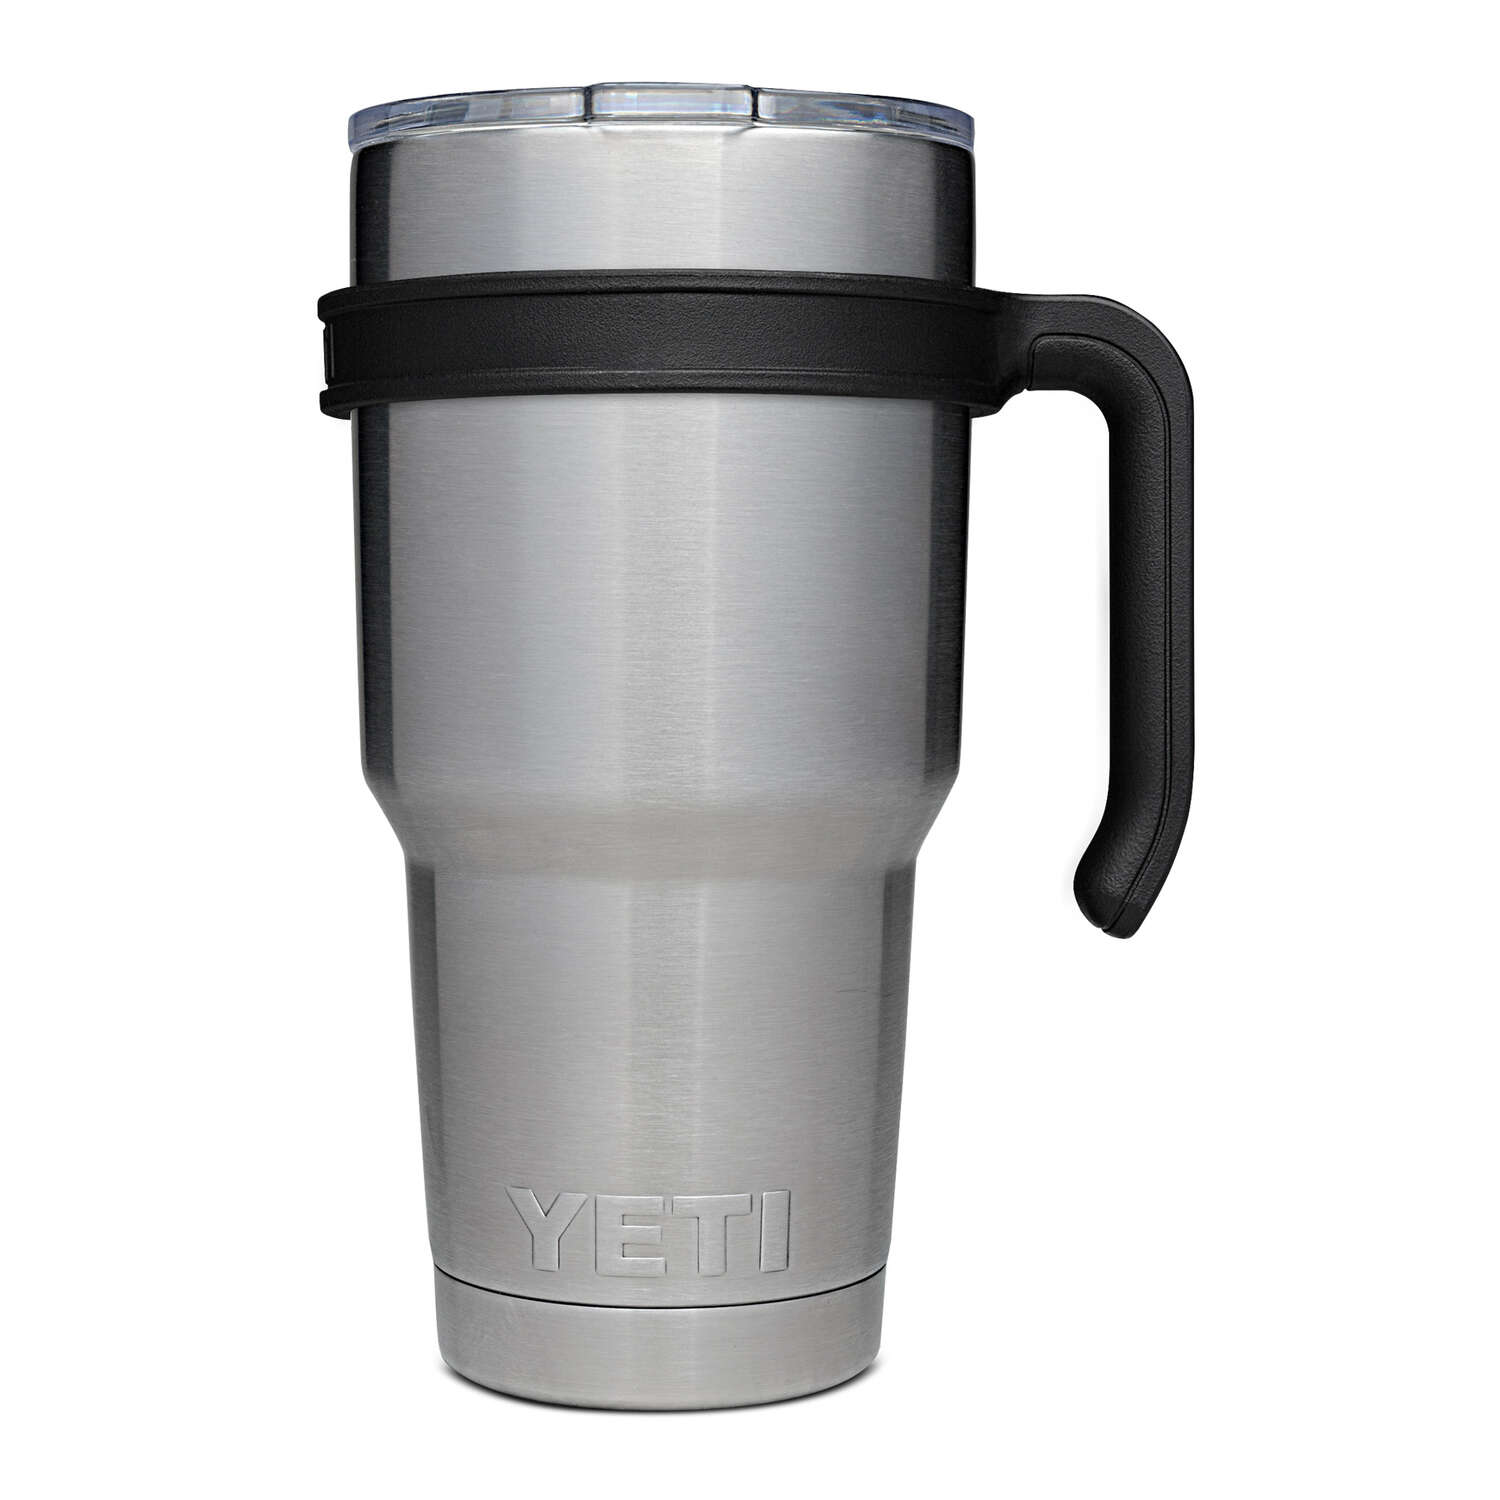 YETI  Rambler  Polypropylene  Tumbler Handle  BPA Free Top Fun  30 oz. Black